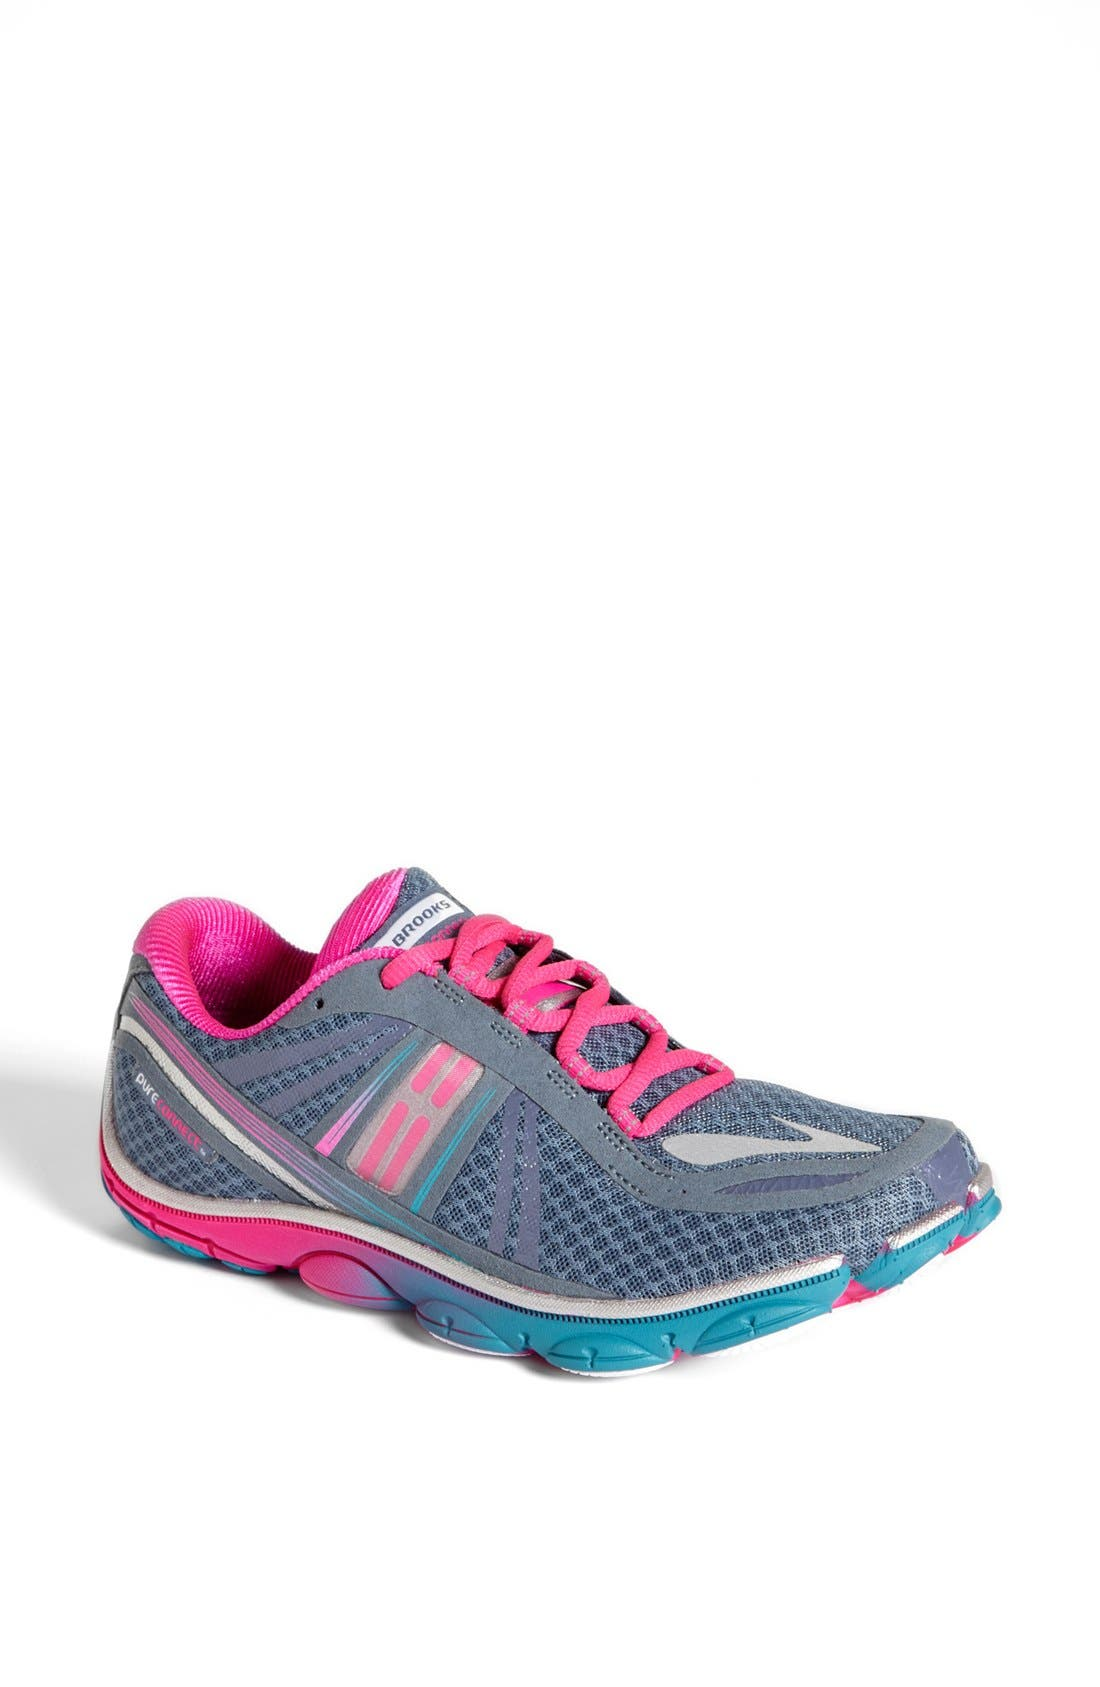 Alternate Image 1 Selected - Brooks 'PureConnect 3' Running Shoe (Women)